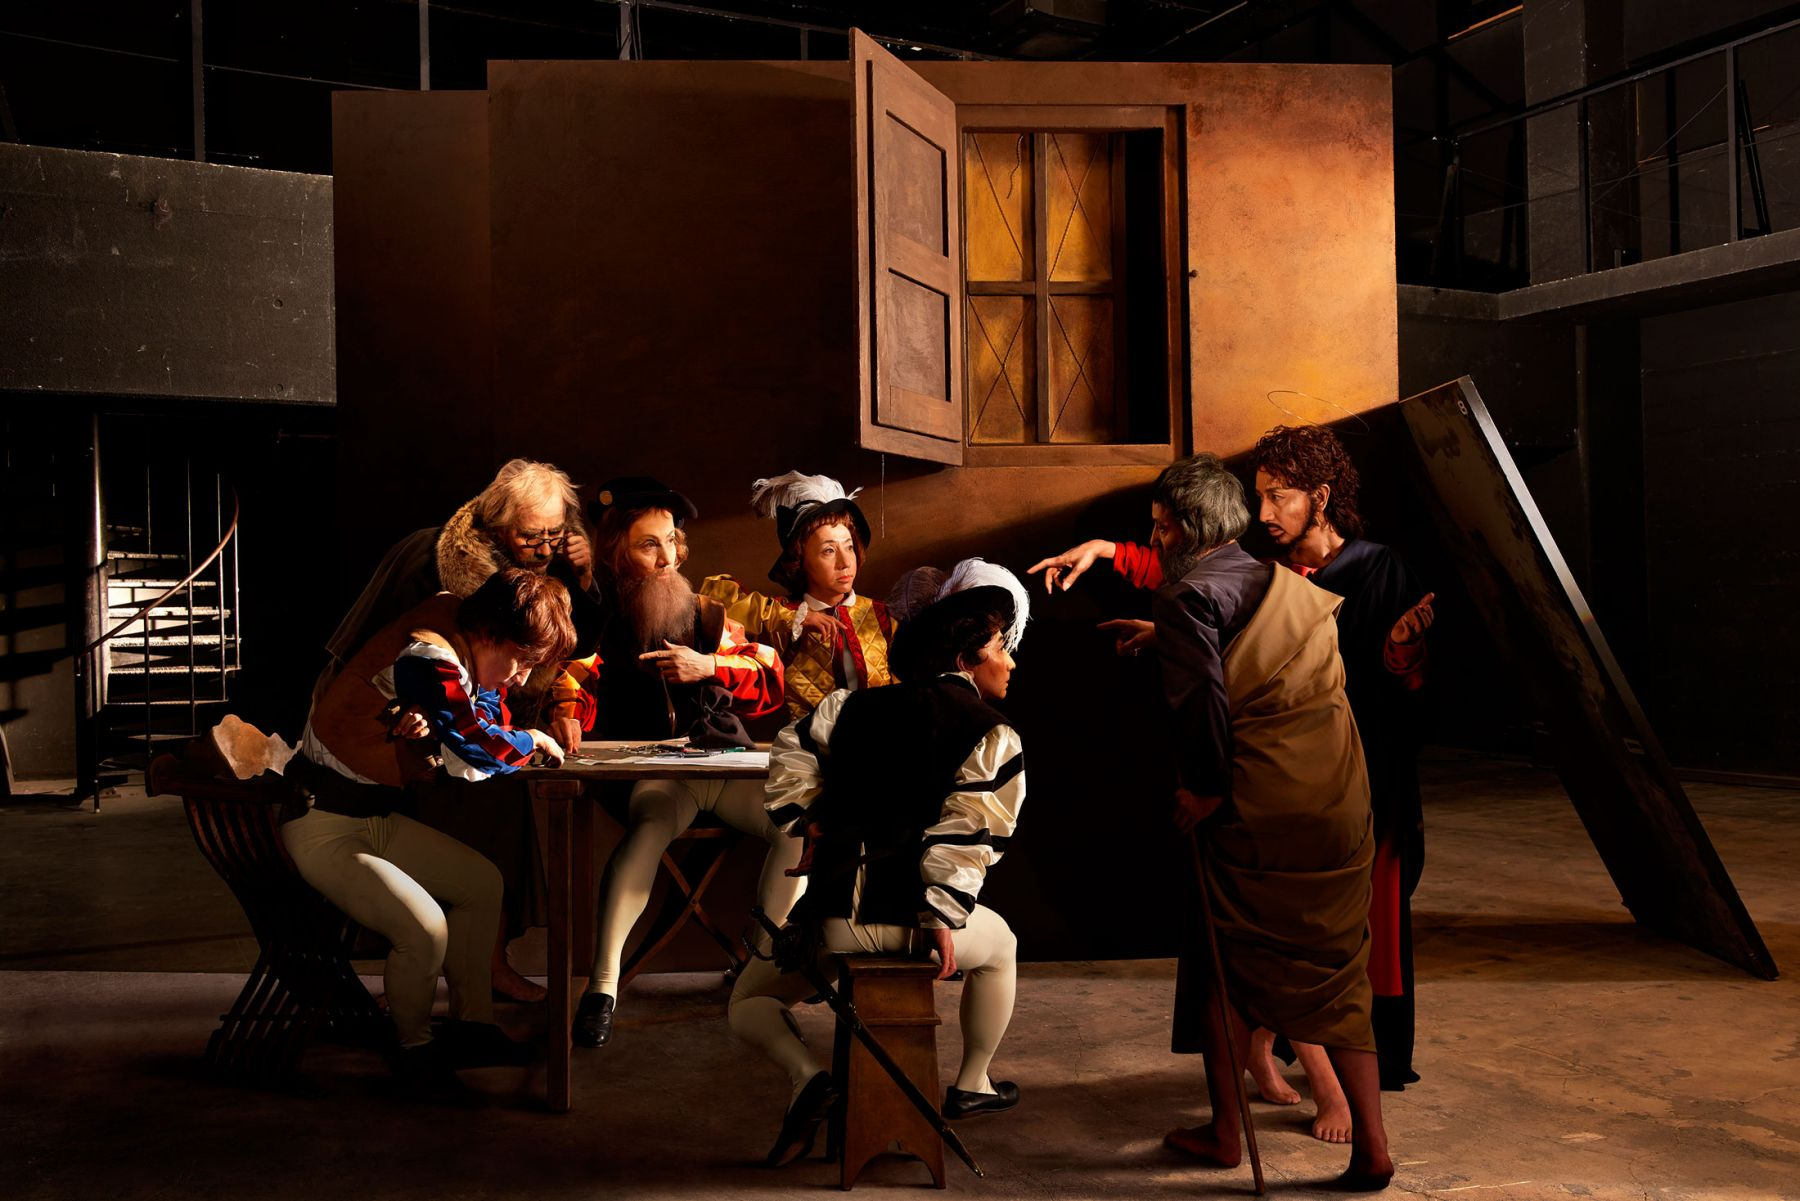 Yasumasa Morimura, Self-Portraits through Art History (Caravaggio/Who is Matthew?), 2016